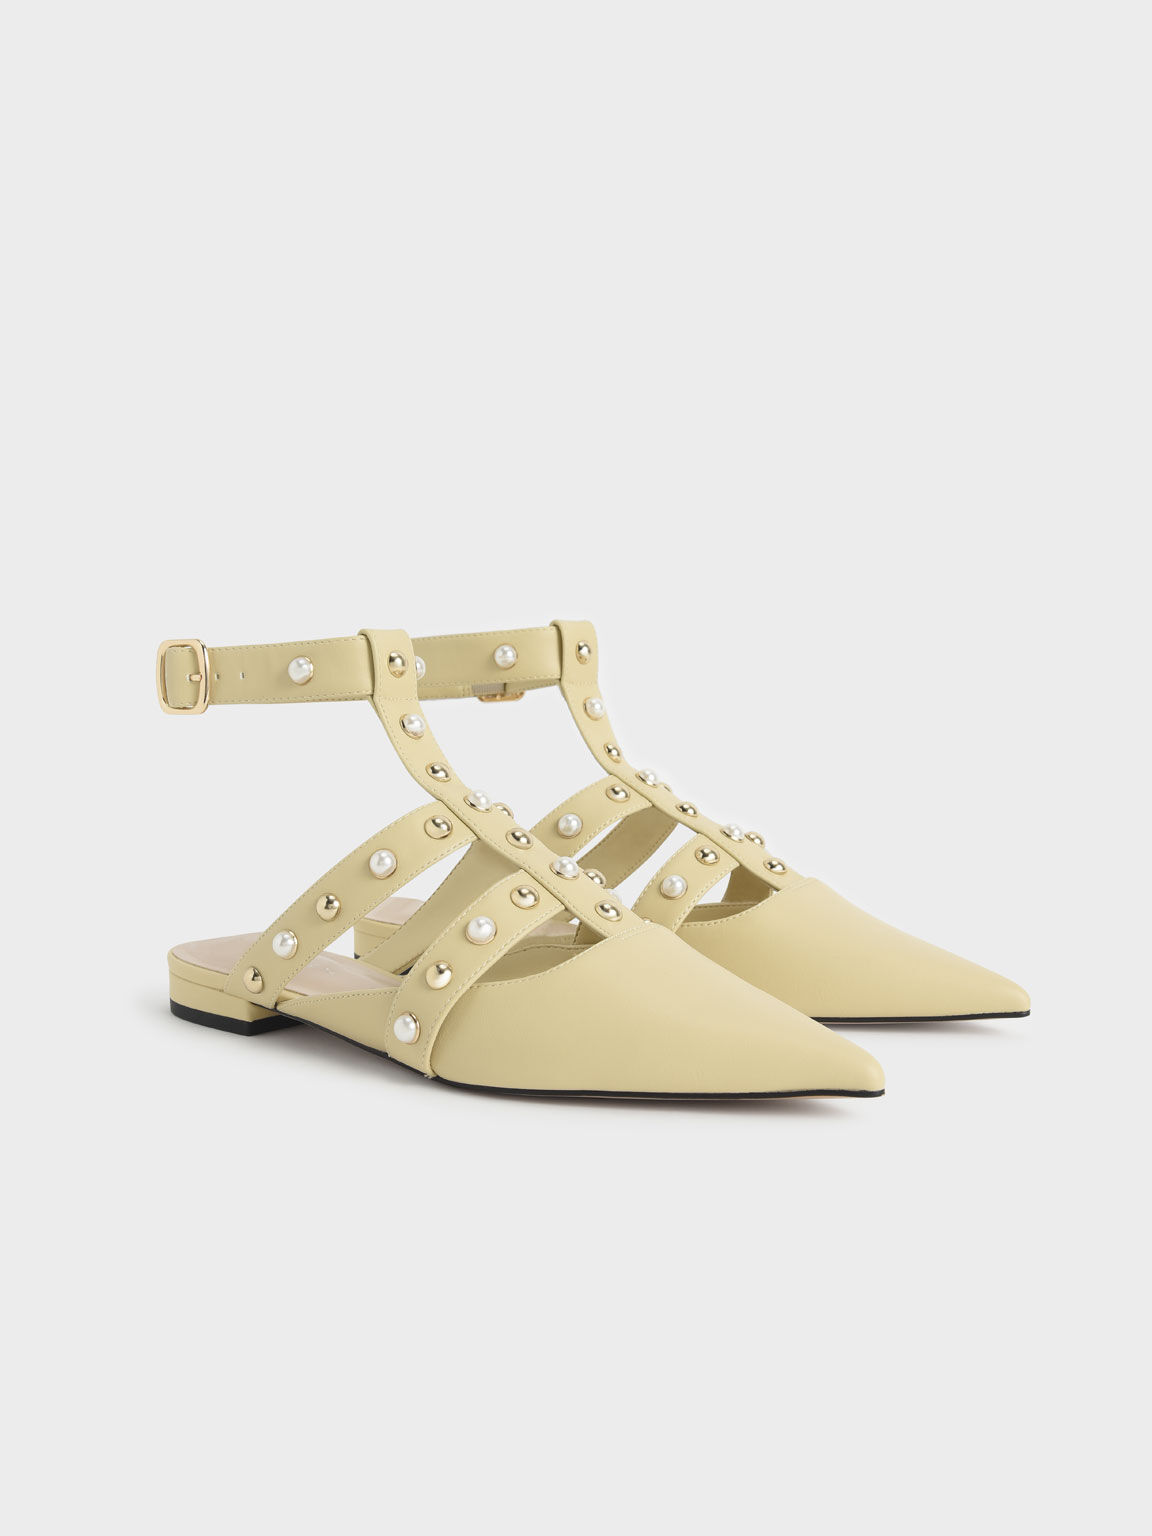 Caged Embellished Ankle Strap Ballerinas, Yellow, hi-res